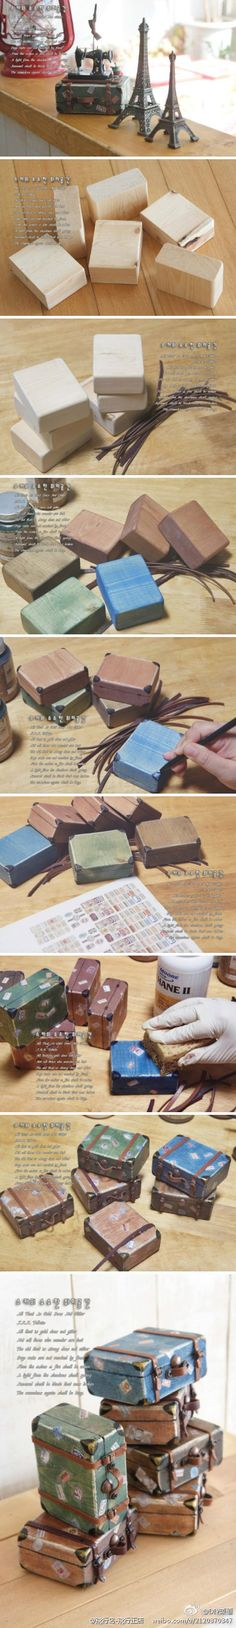 DIY mini retro suitcase with small pieces of wood to